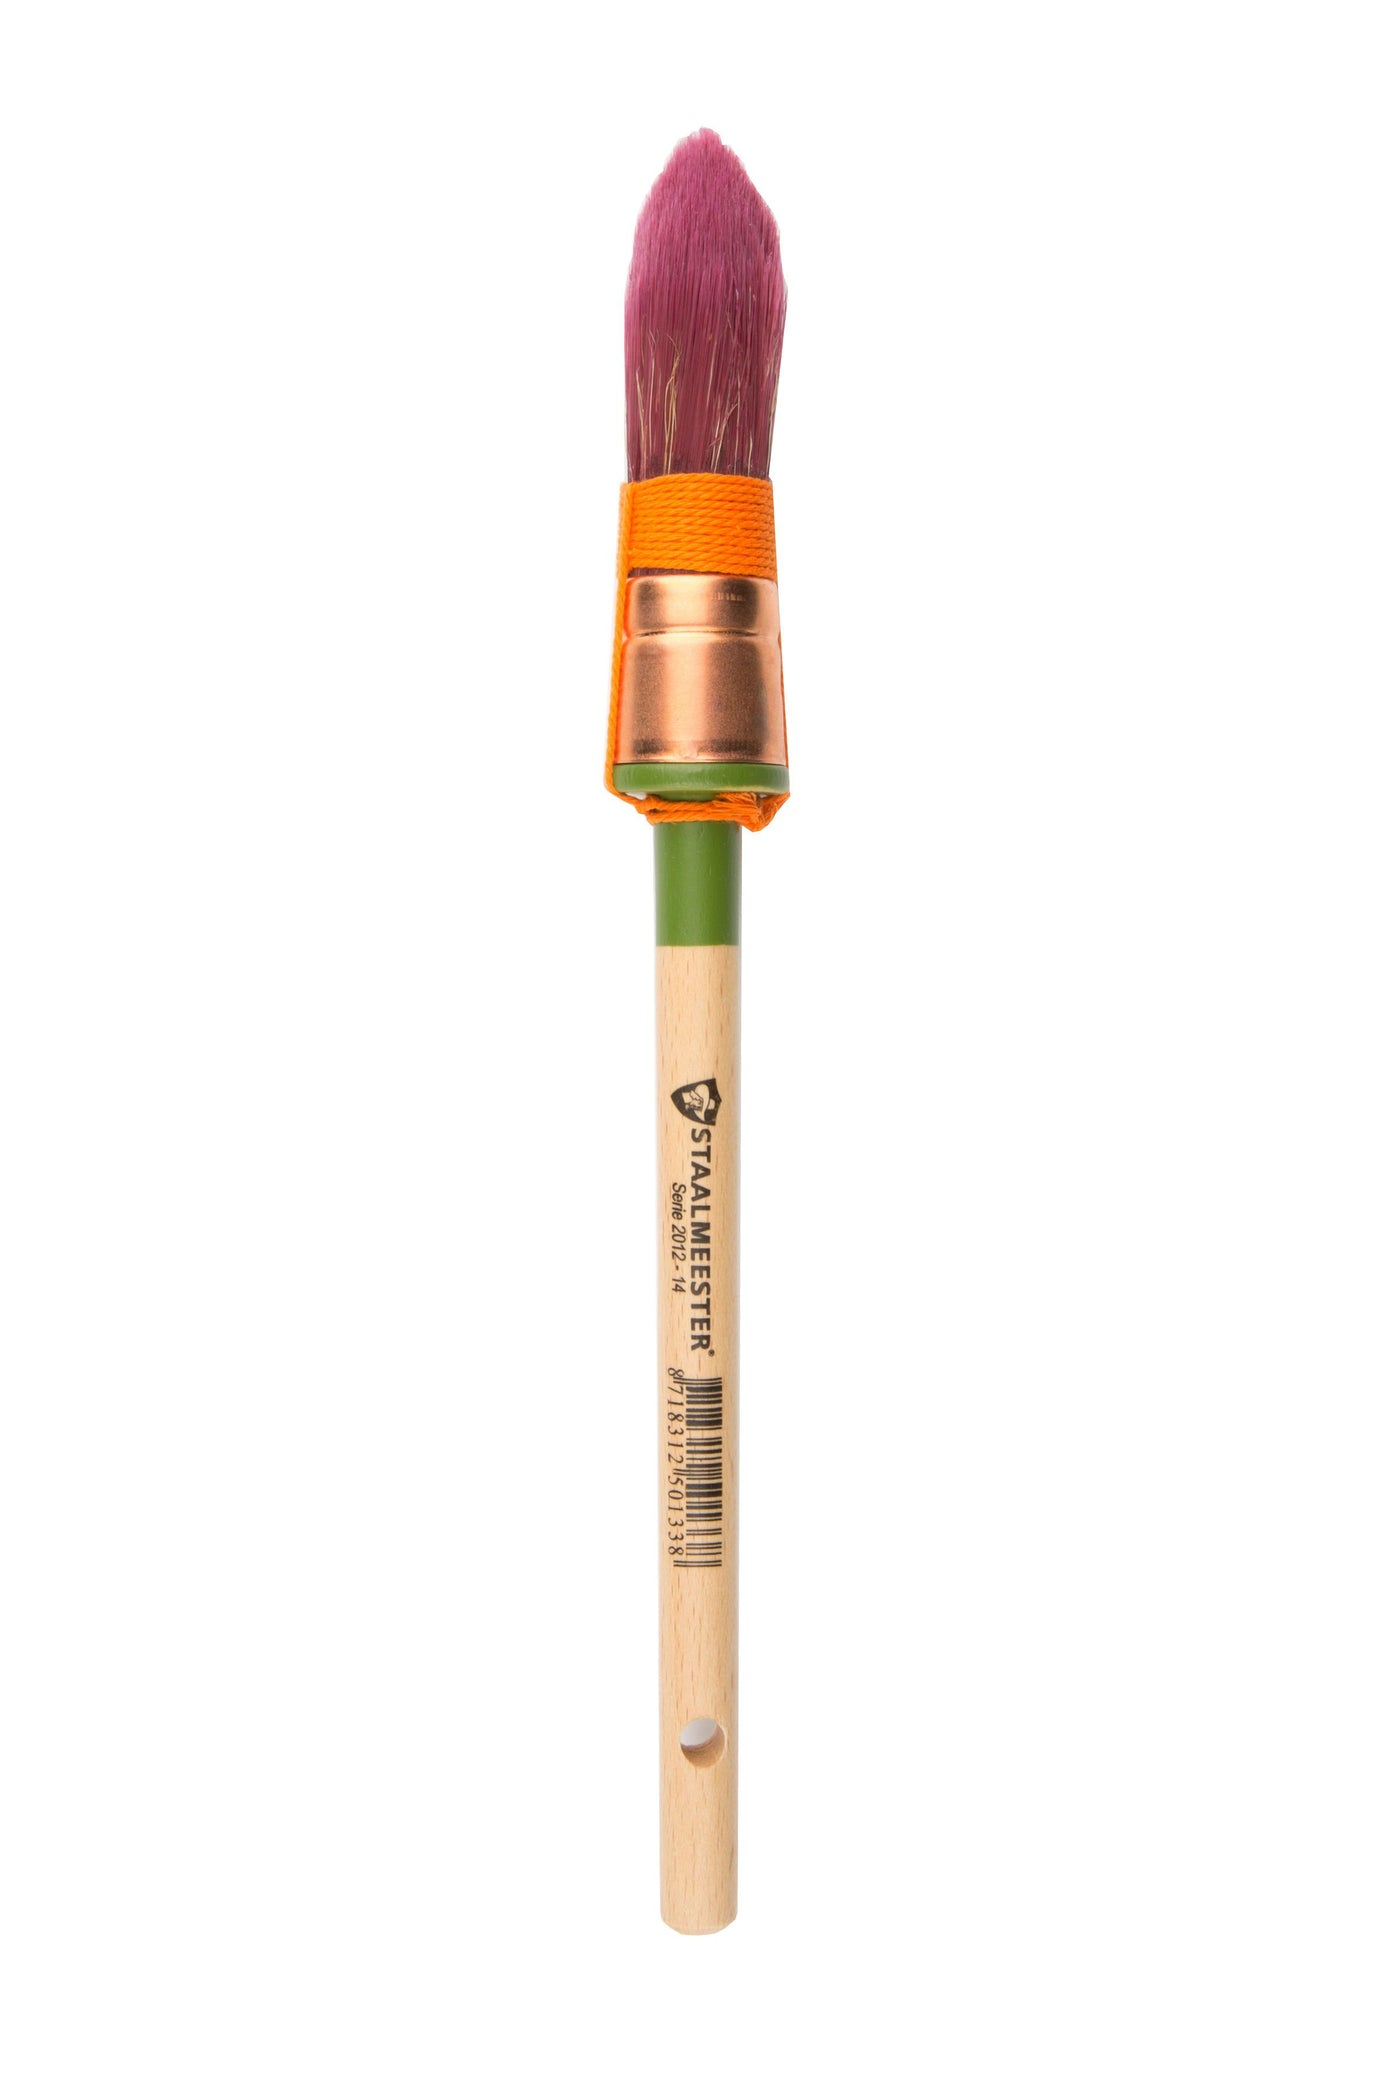 Staalmeester Paint Brush - Pointed Sash Brush - Tynt Paint Studio